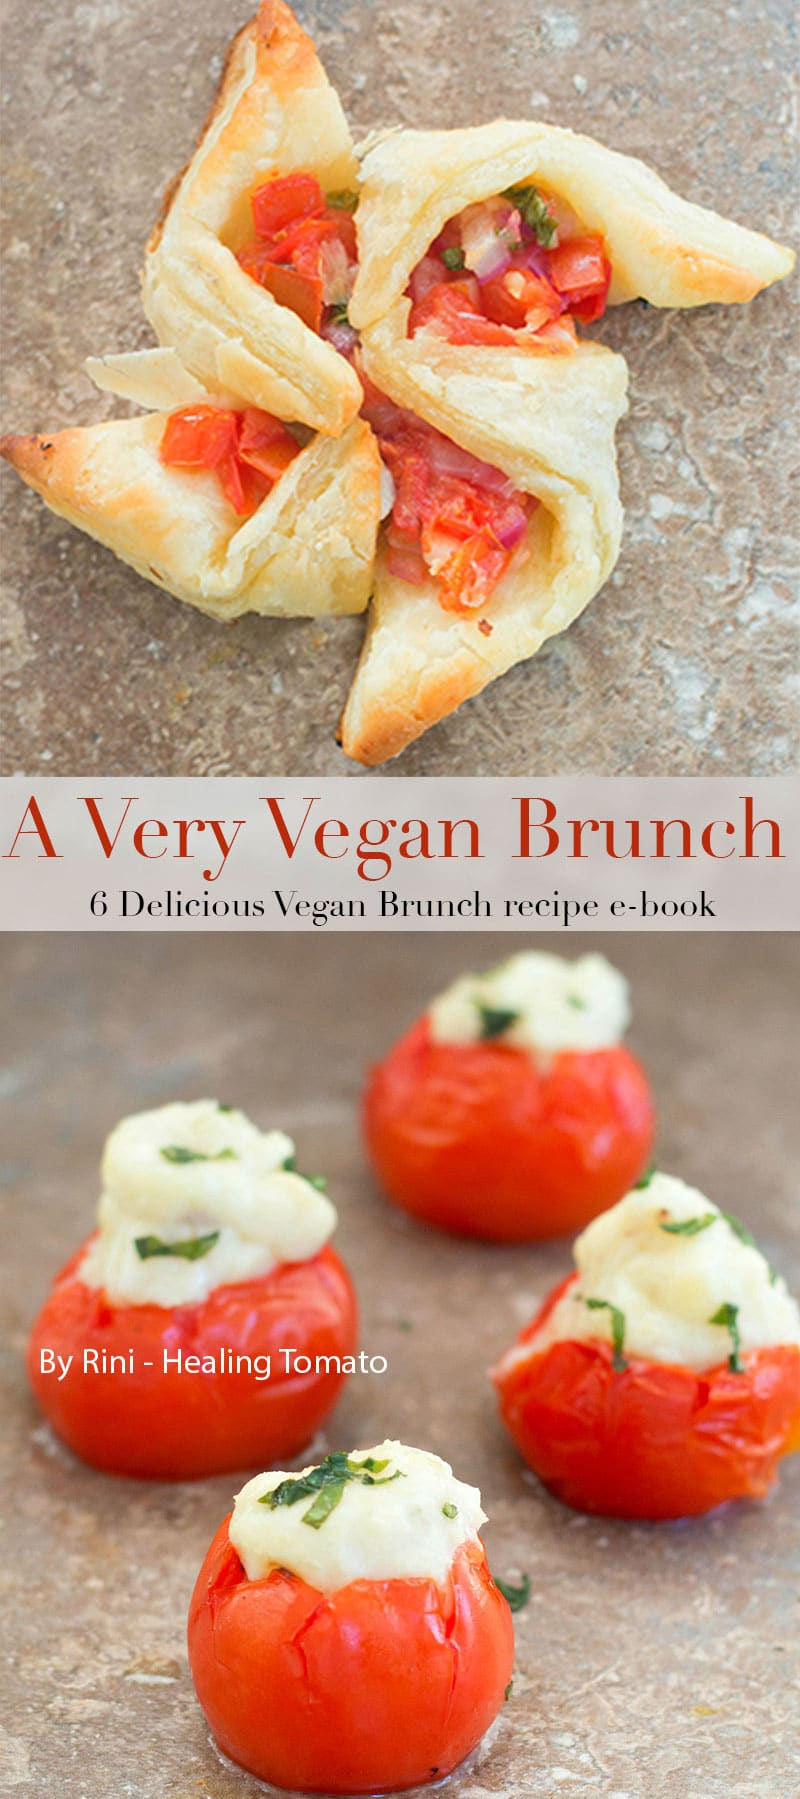 A Very Vegan Brunch - 6 Amazingly delicious vegan brunch recipes that include drinks, appetizers, main course and dessert. Try the over the top virgin bloody Mary and other tomato recipes that are perfect for any brunch menu